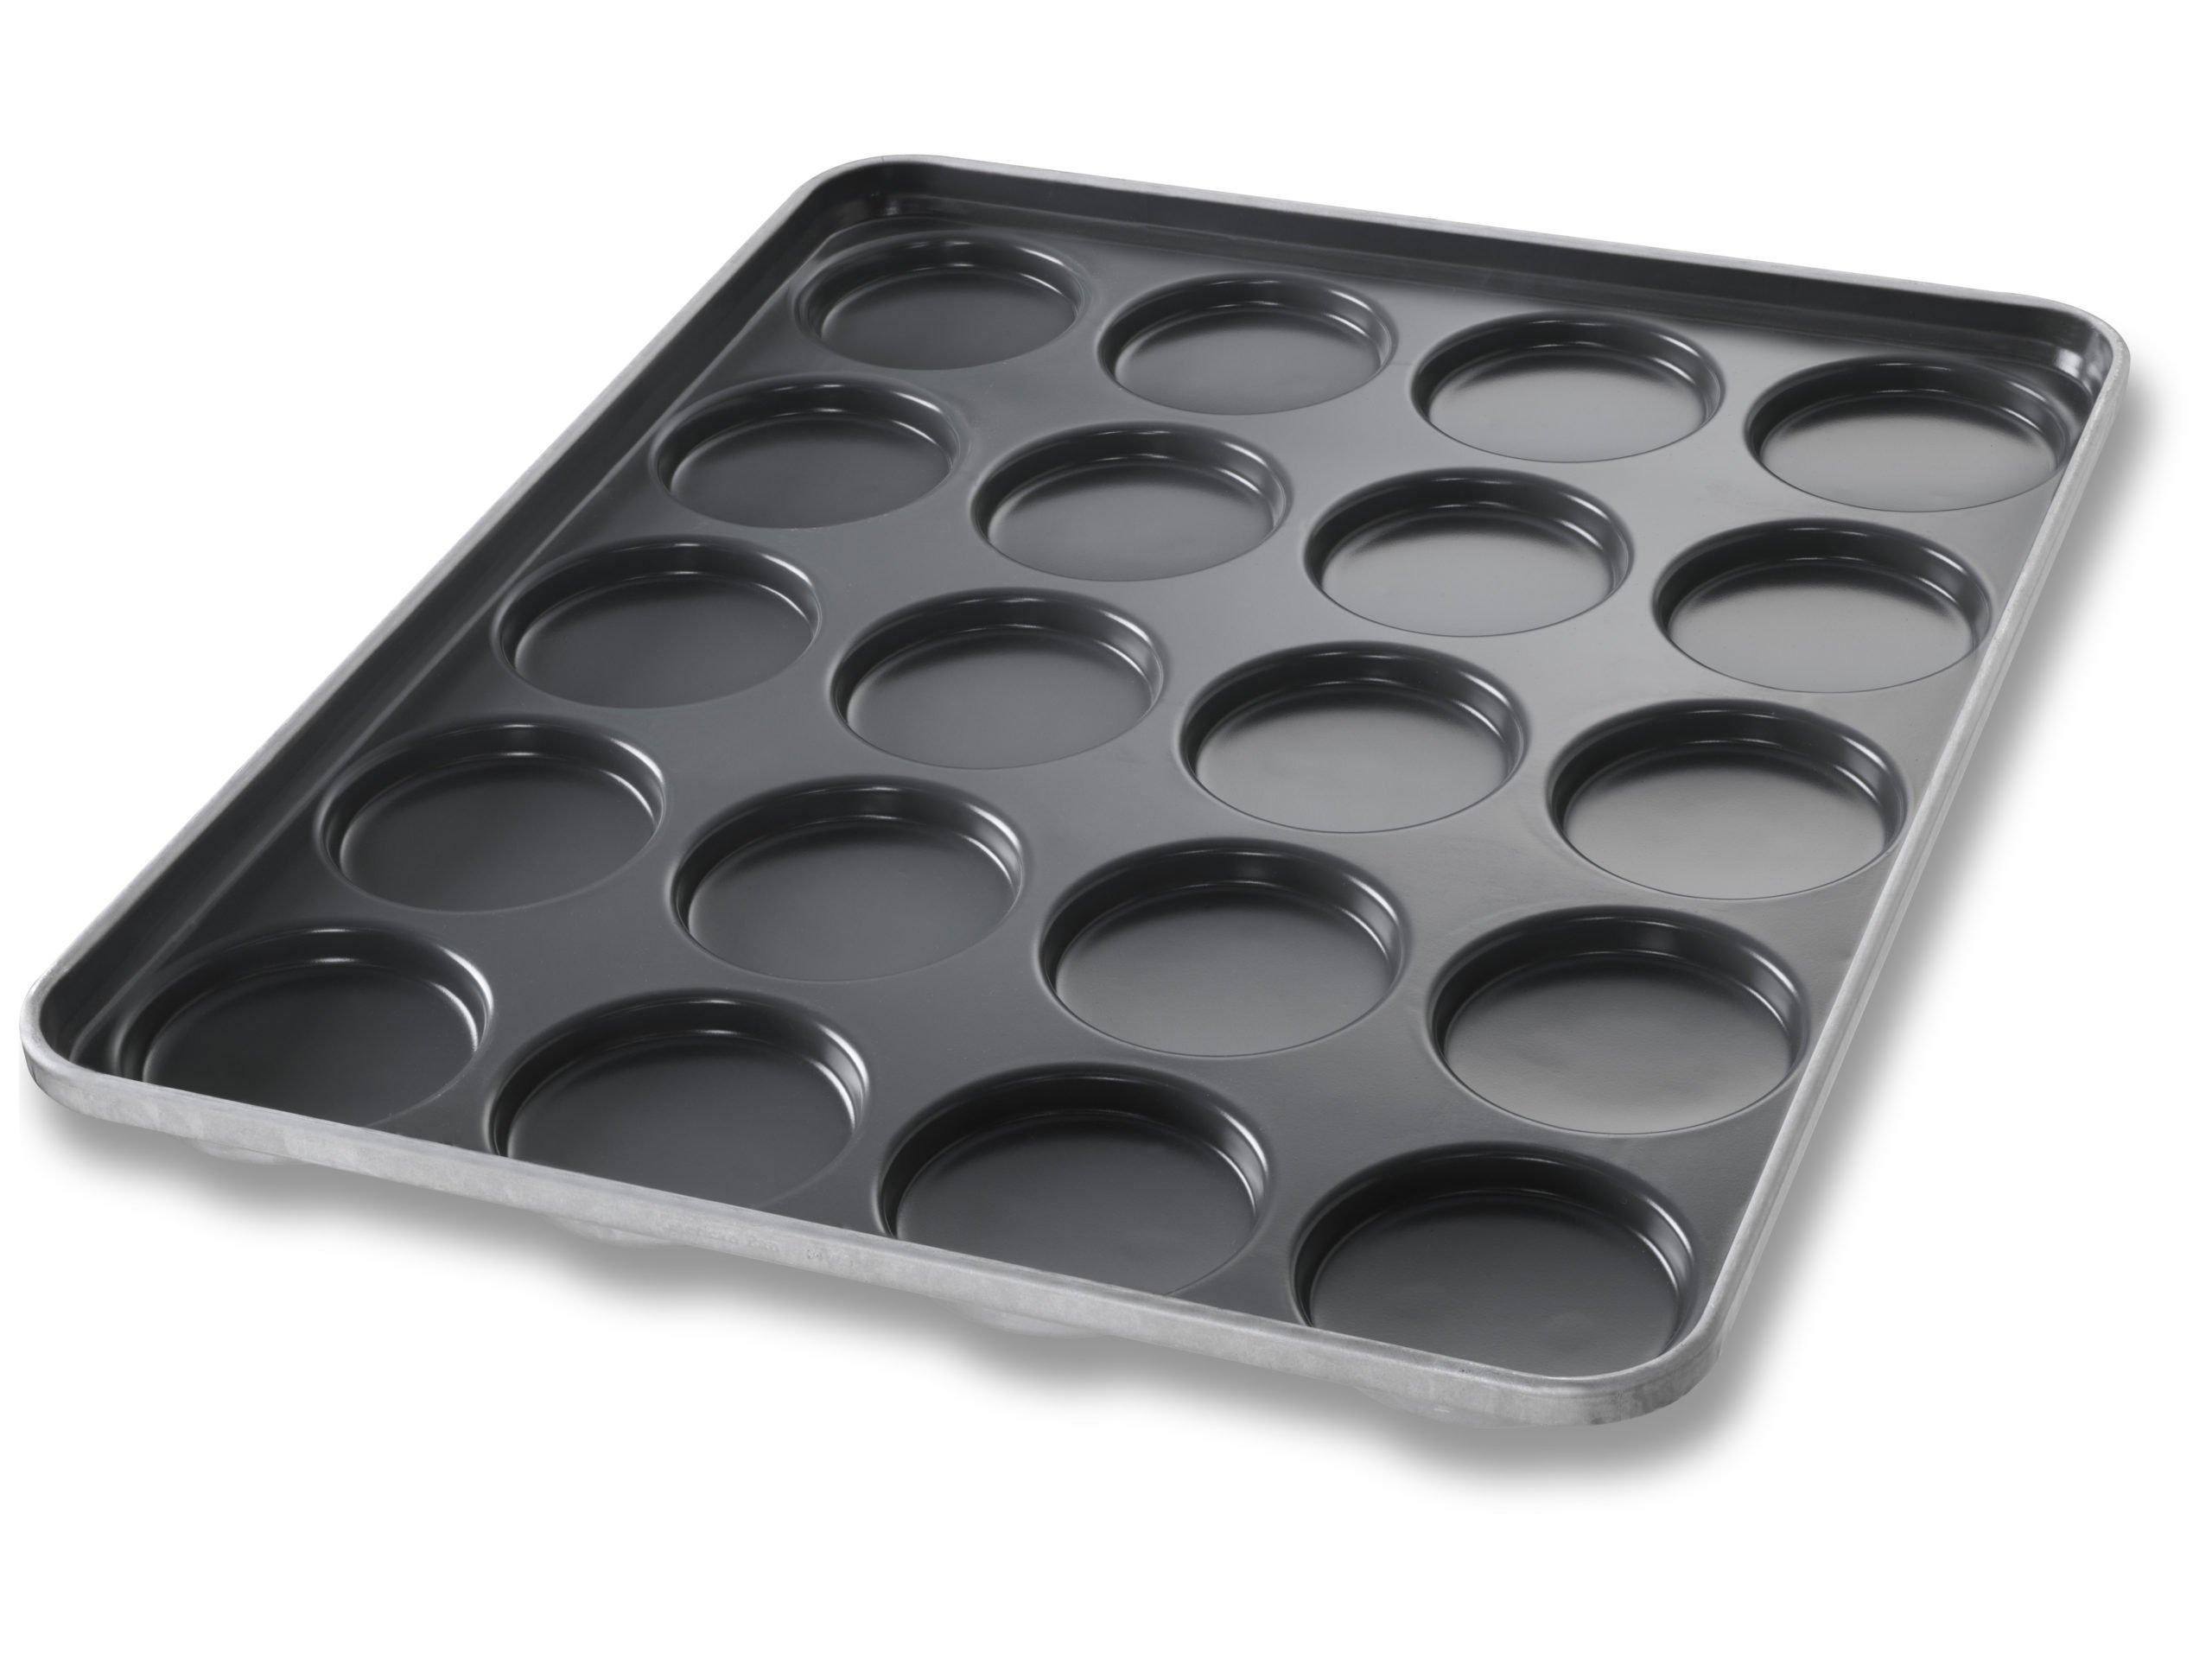 Hamburger Bun Pan with Flared End Structural Ribs - DuraShield® Coating